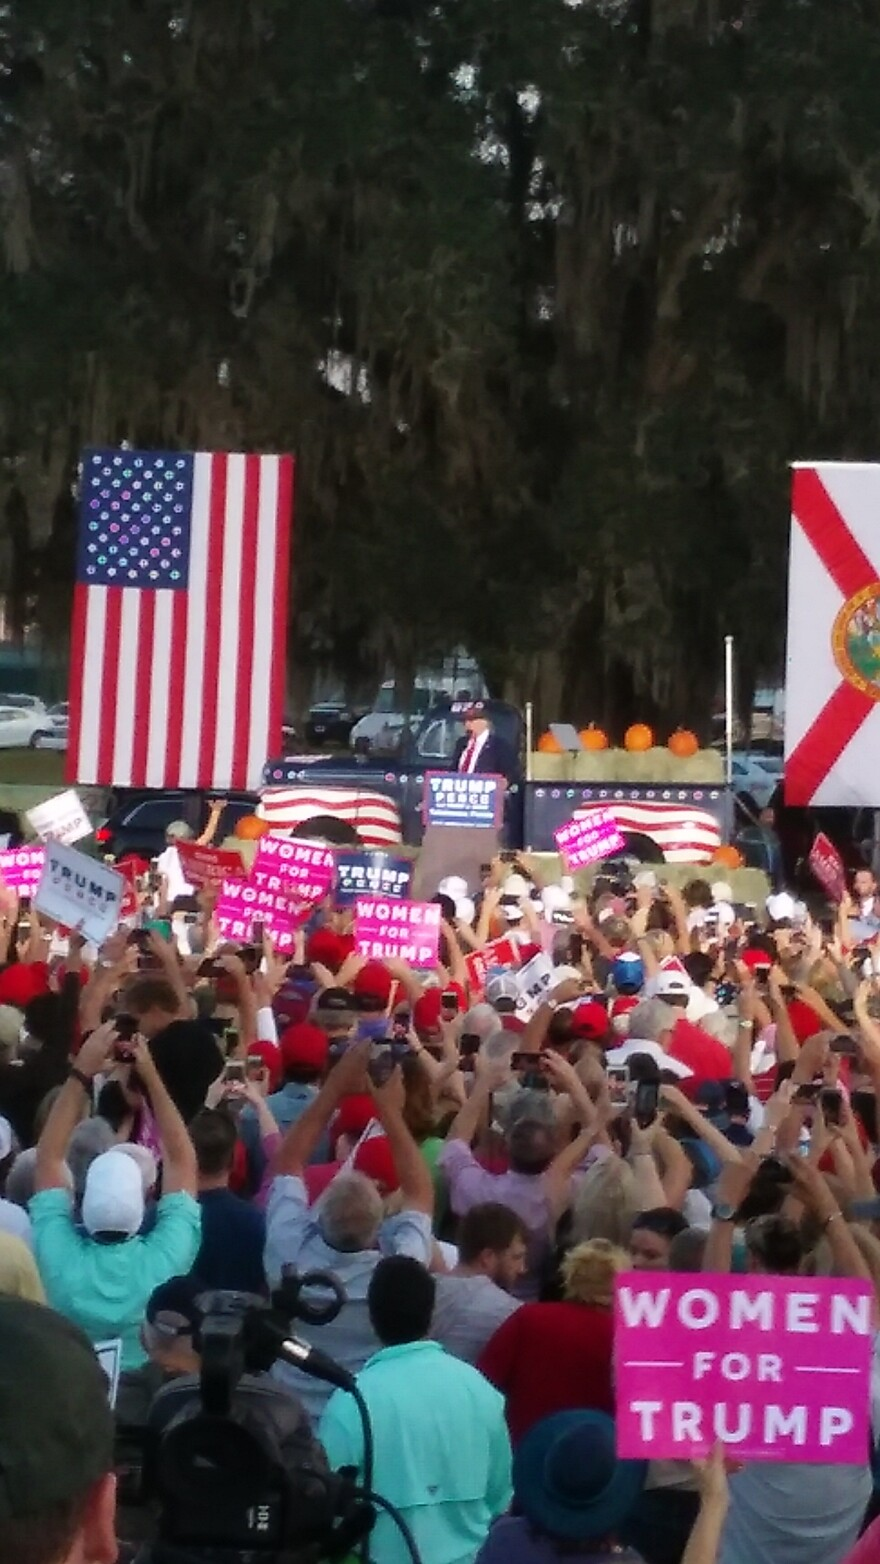 Donald Trump takes the stage at a late afternoon rally outside of the Tallahassee Automobile Museum.